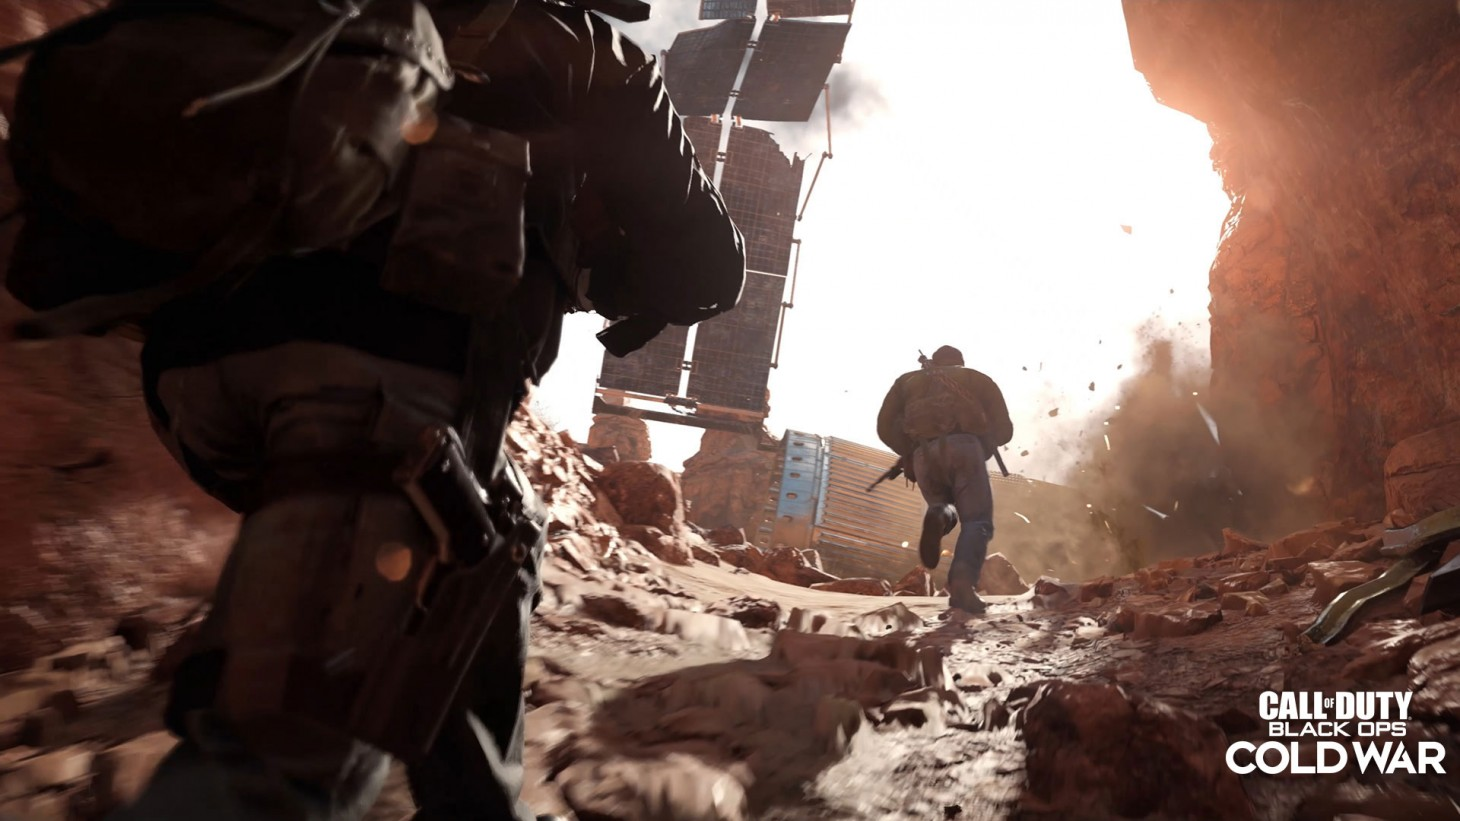 Check Out The Call Of Duty Black Ops Cold War Pc Trailer Game Informer